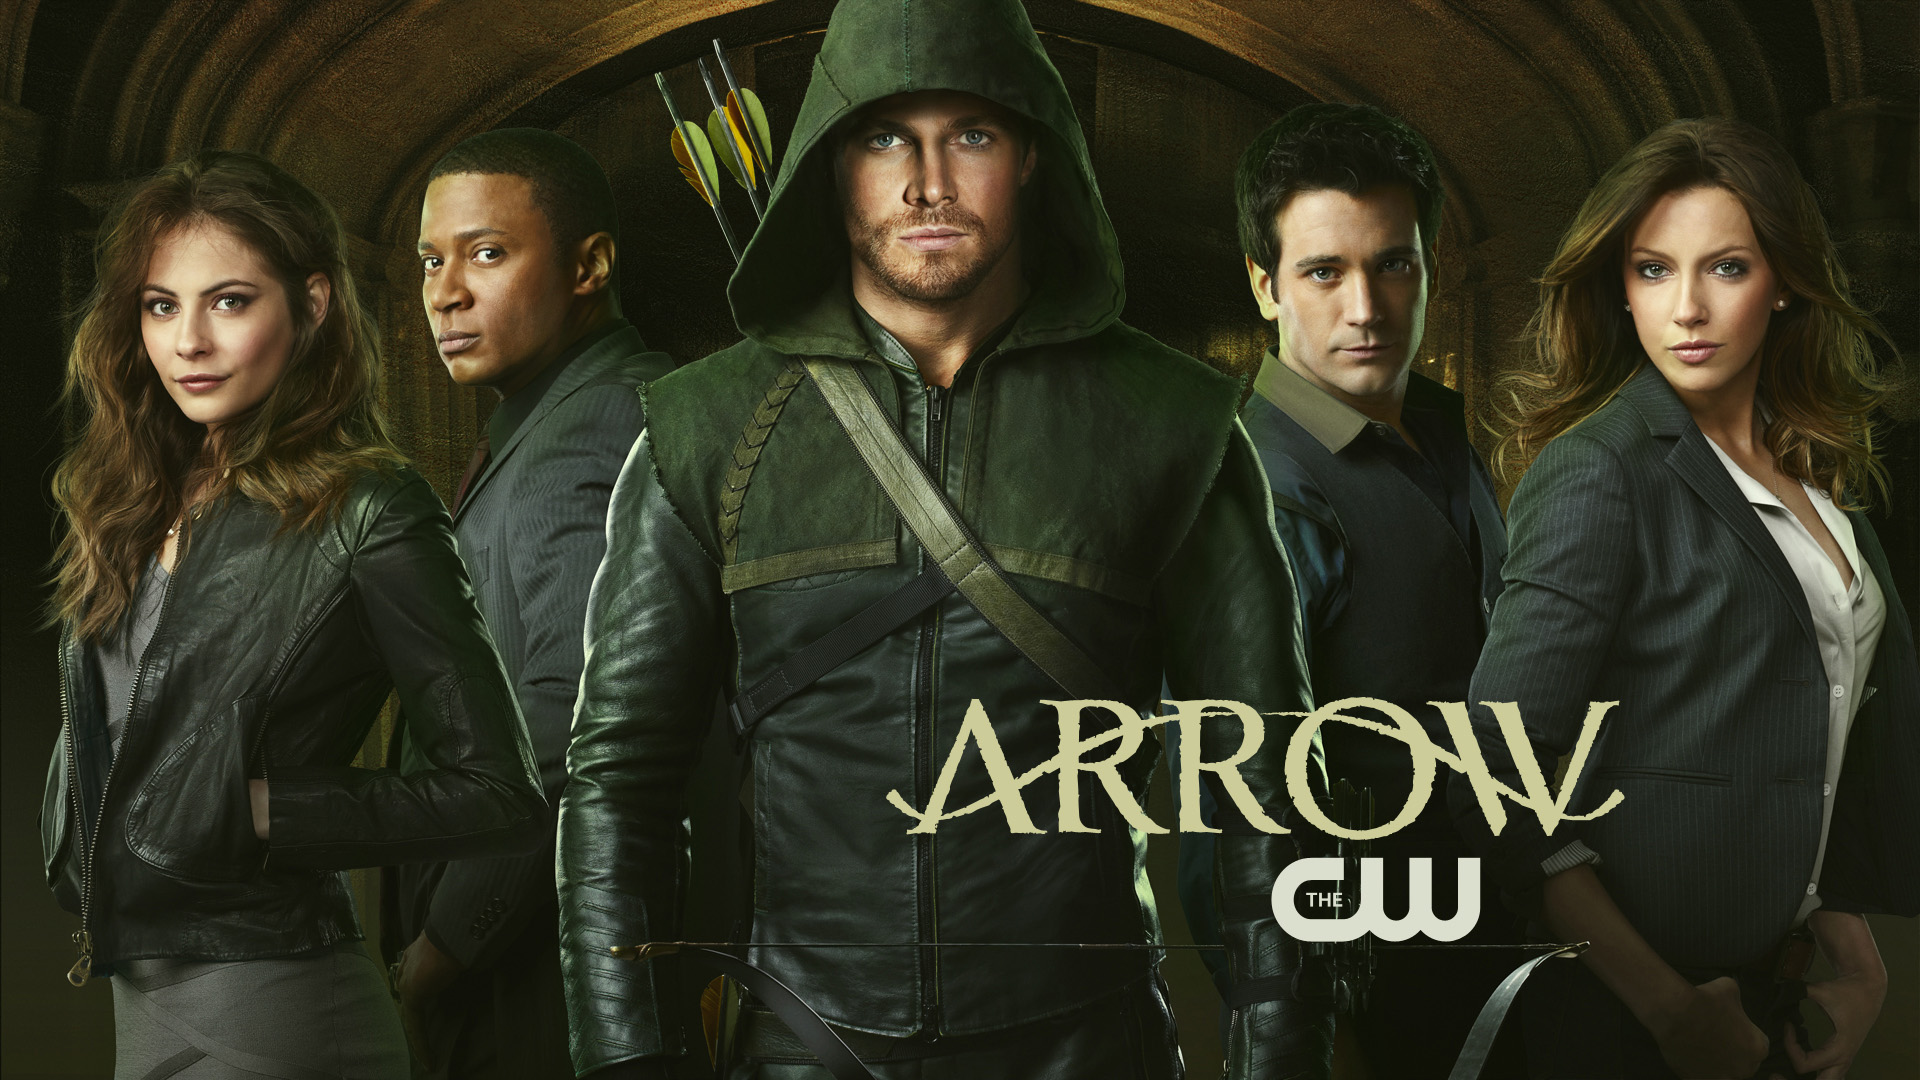 Arrow CW TV Show 1978.75 Kb